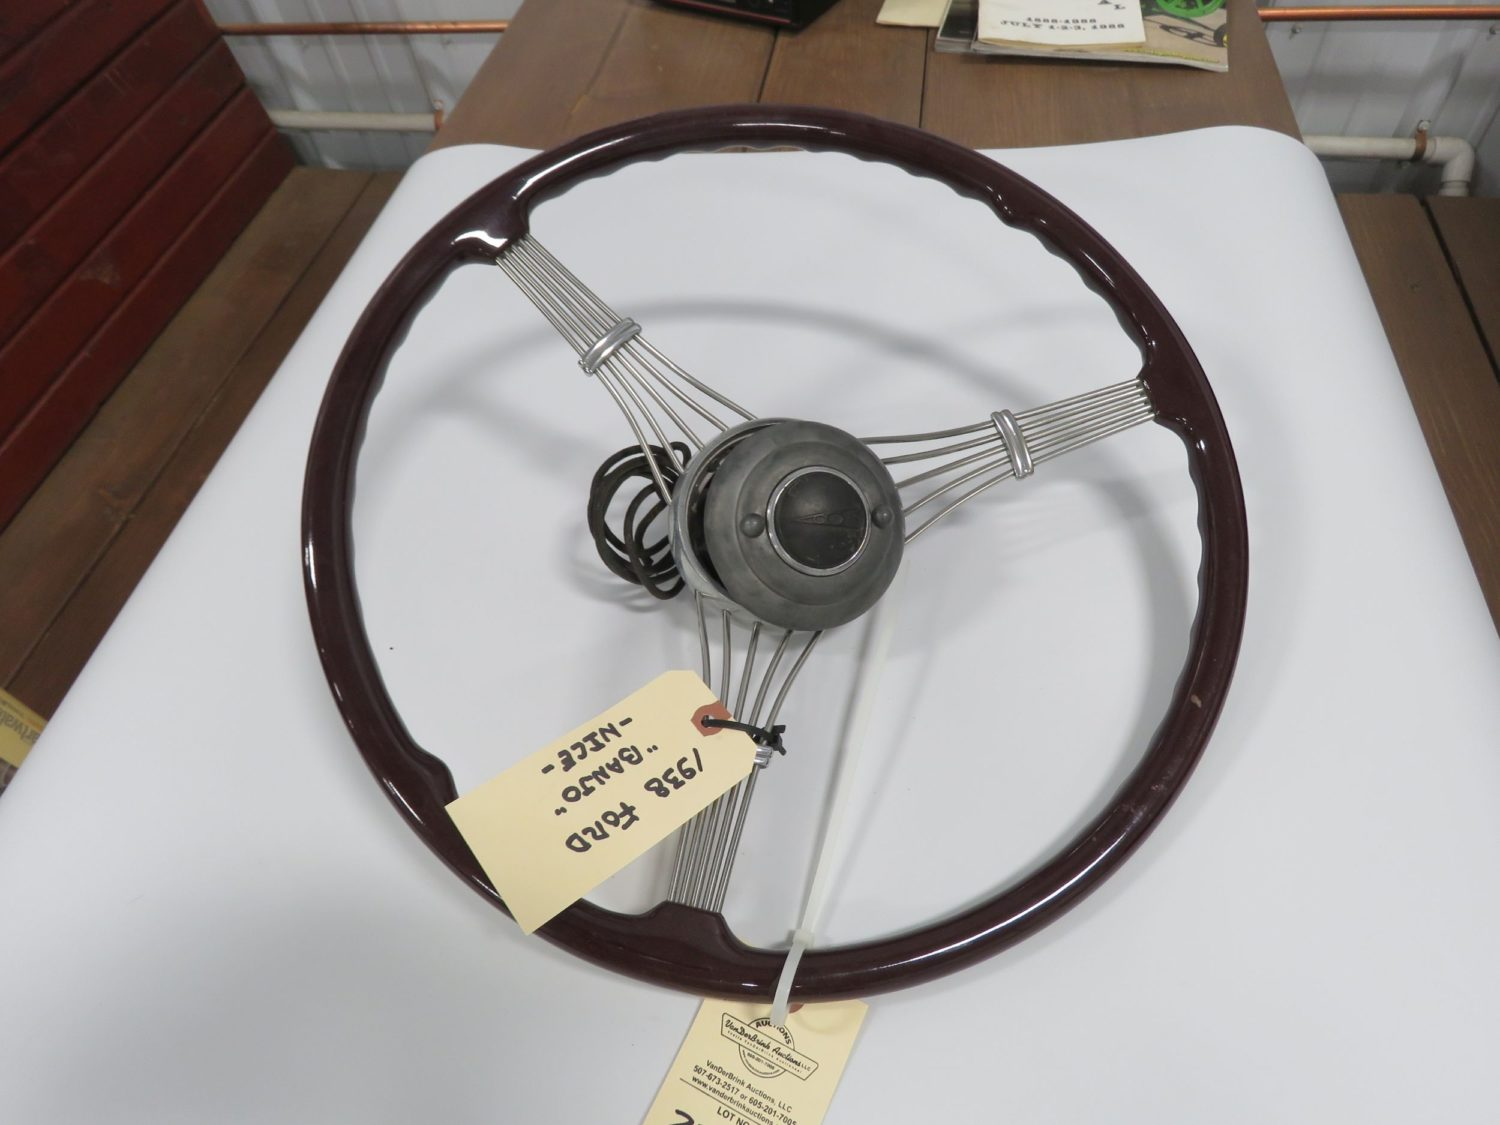 1938 Ford Banjo Steering wheel w/Horn Button Restored - Image 1